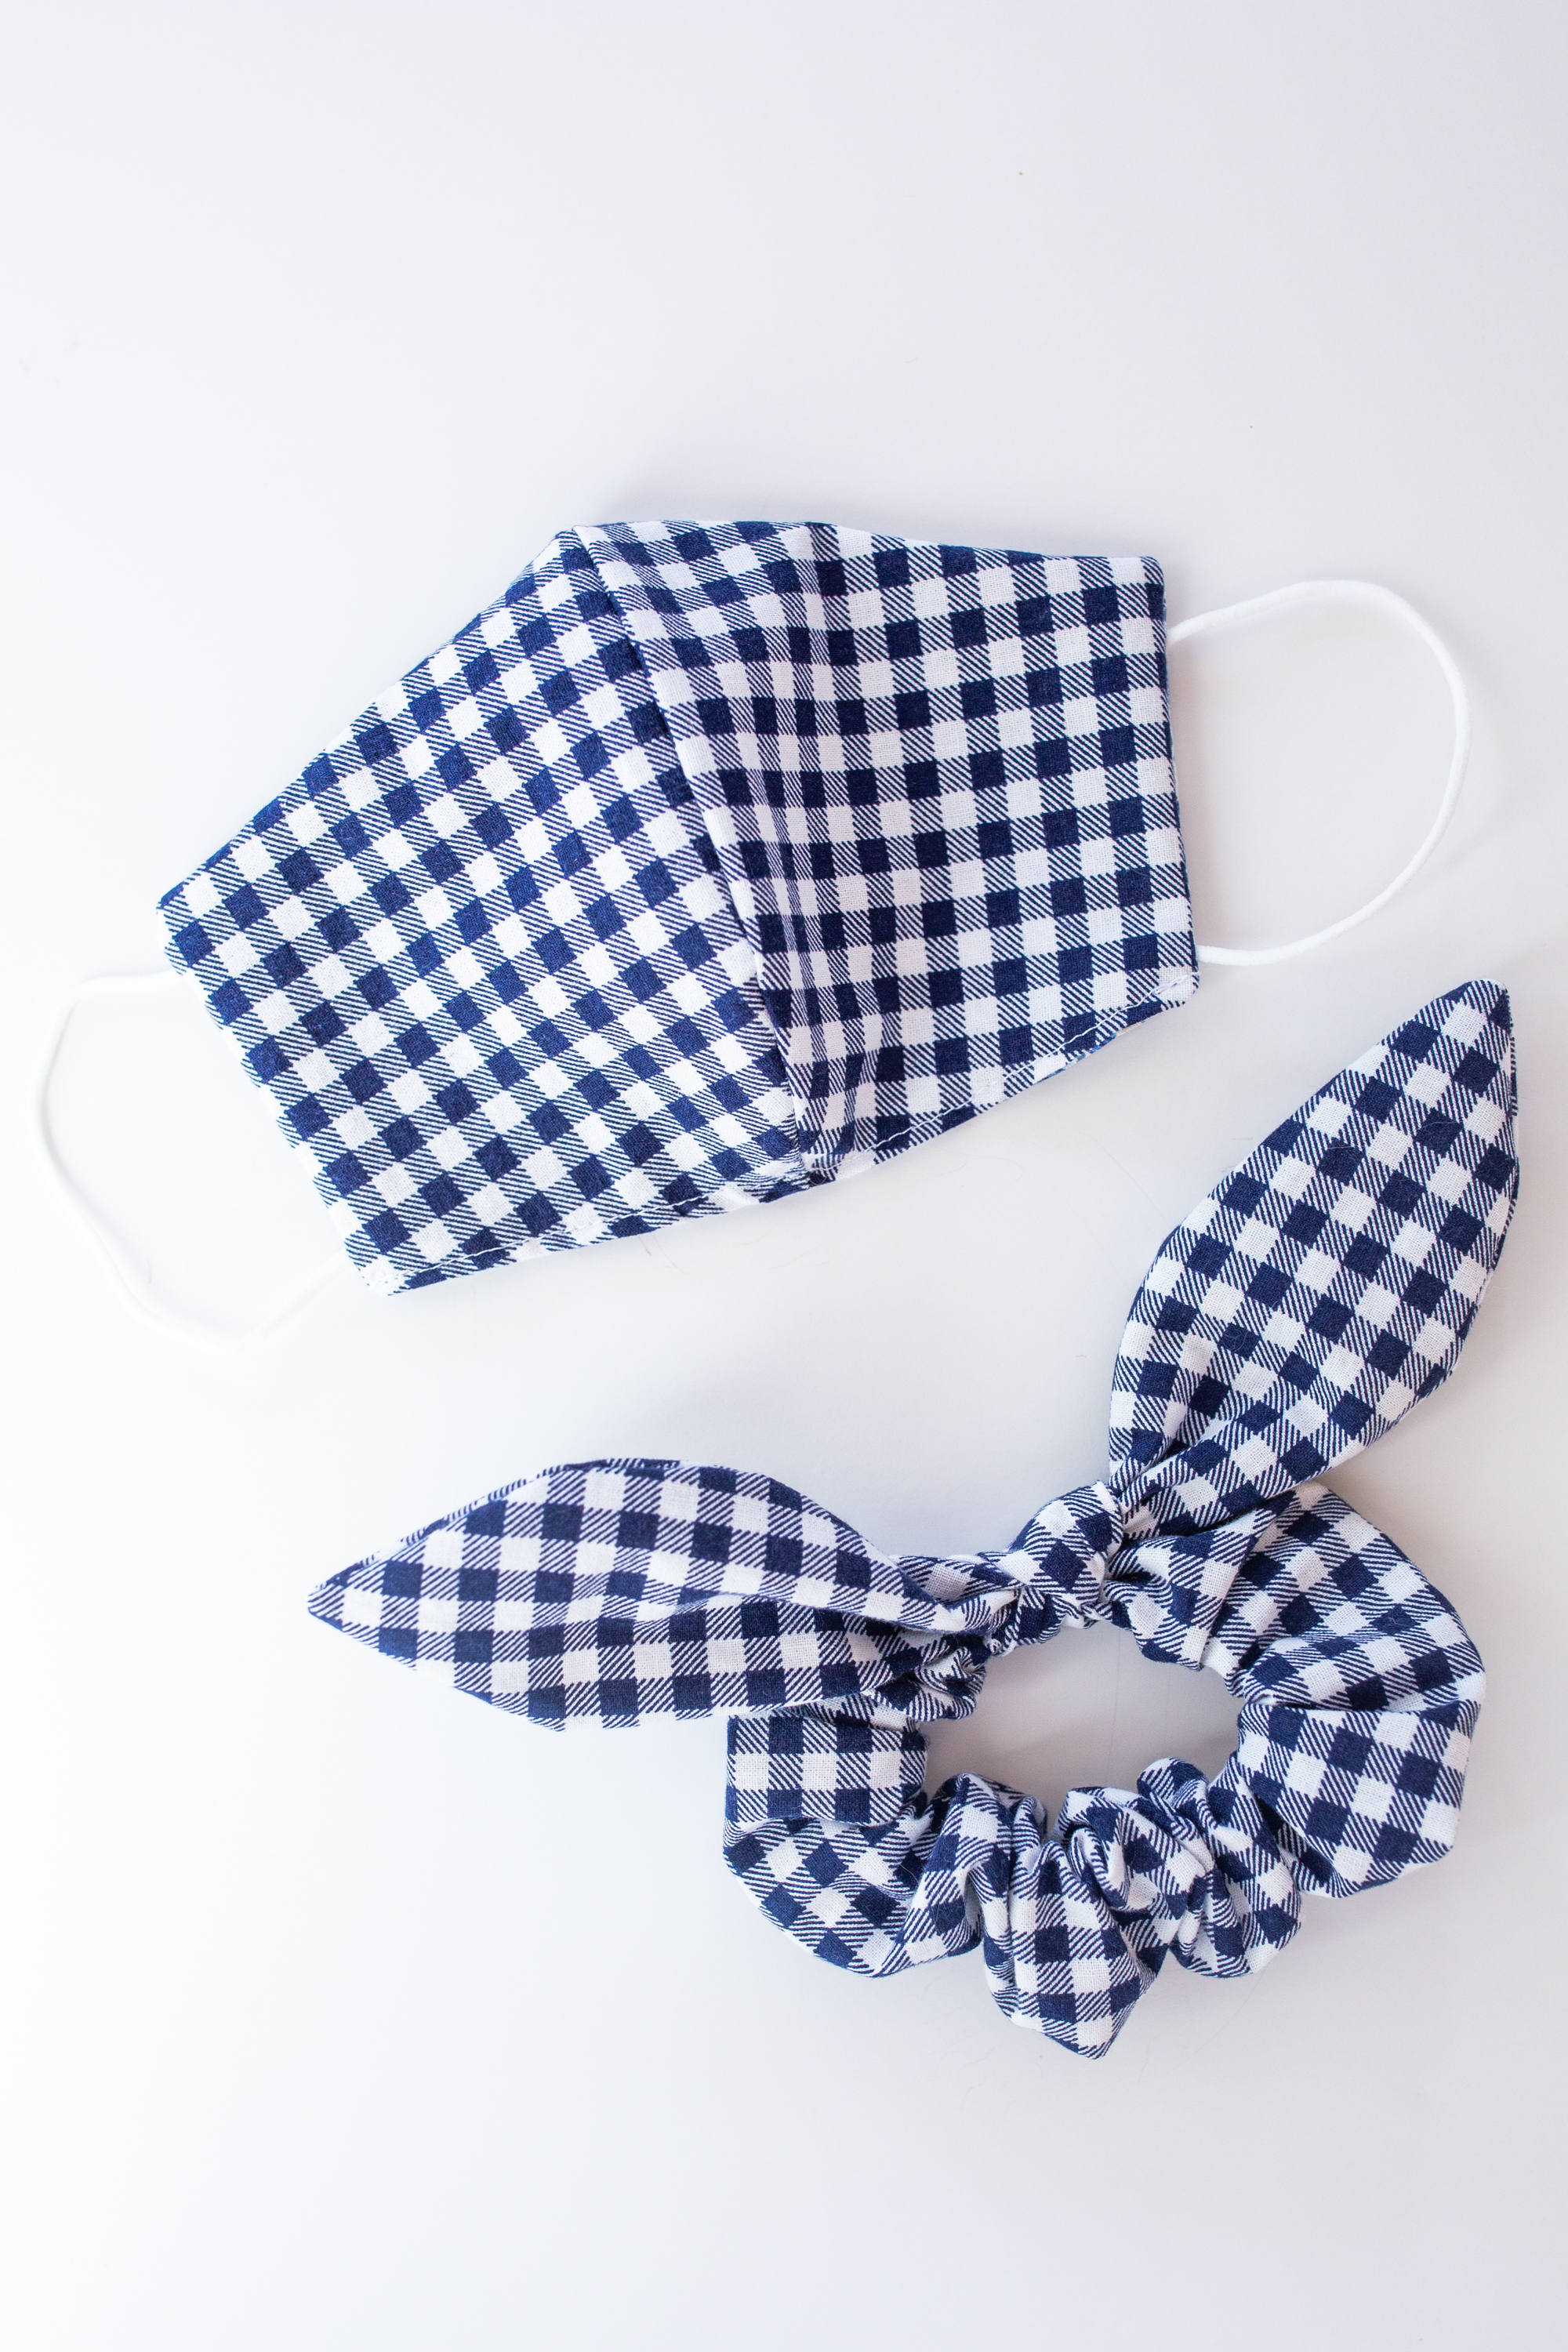 Matching Gingham Scrunchie and Face Mask Set / Face Mask for Fall / Preppy Style / Preppy Outfit / Gingham Print / Bow Scrunchie - Sunshine Style